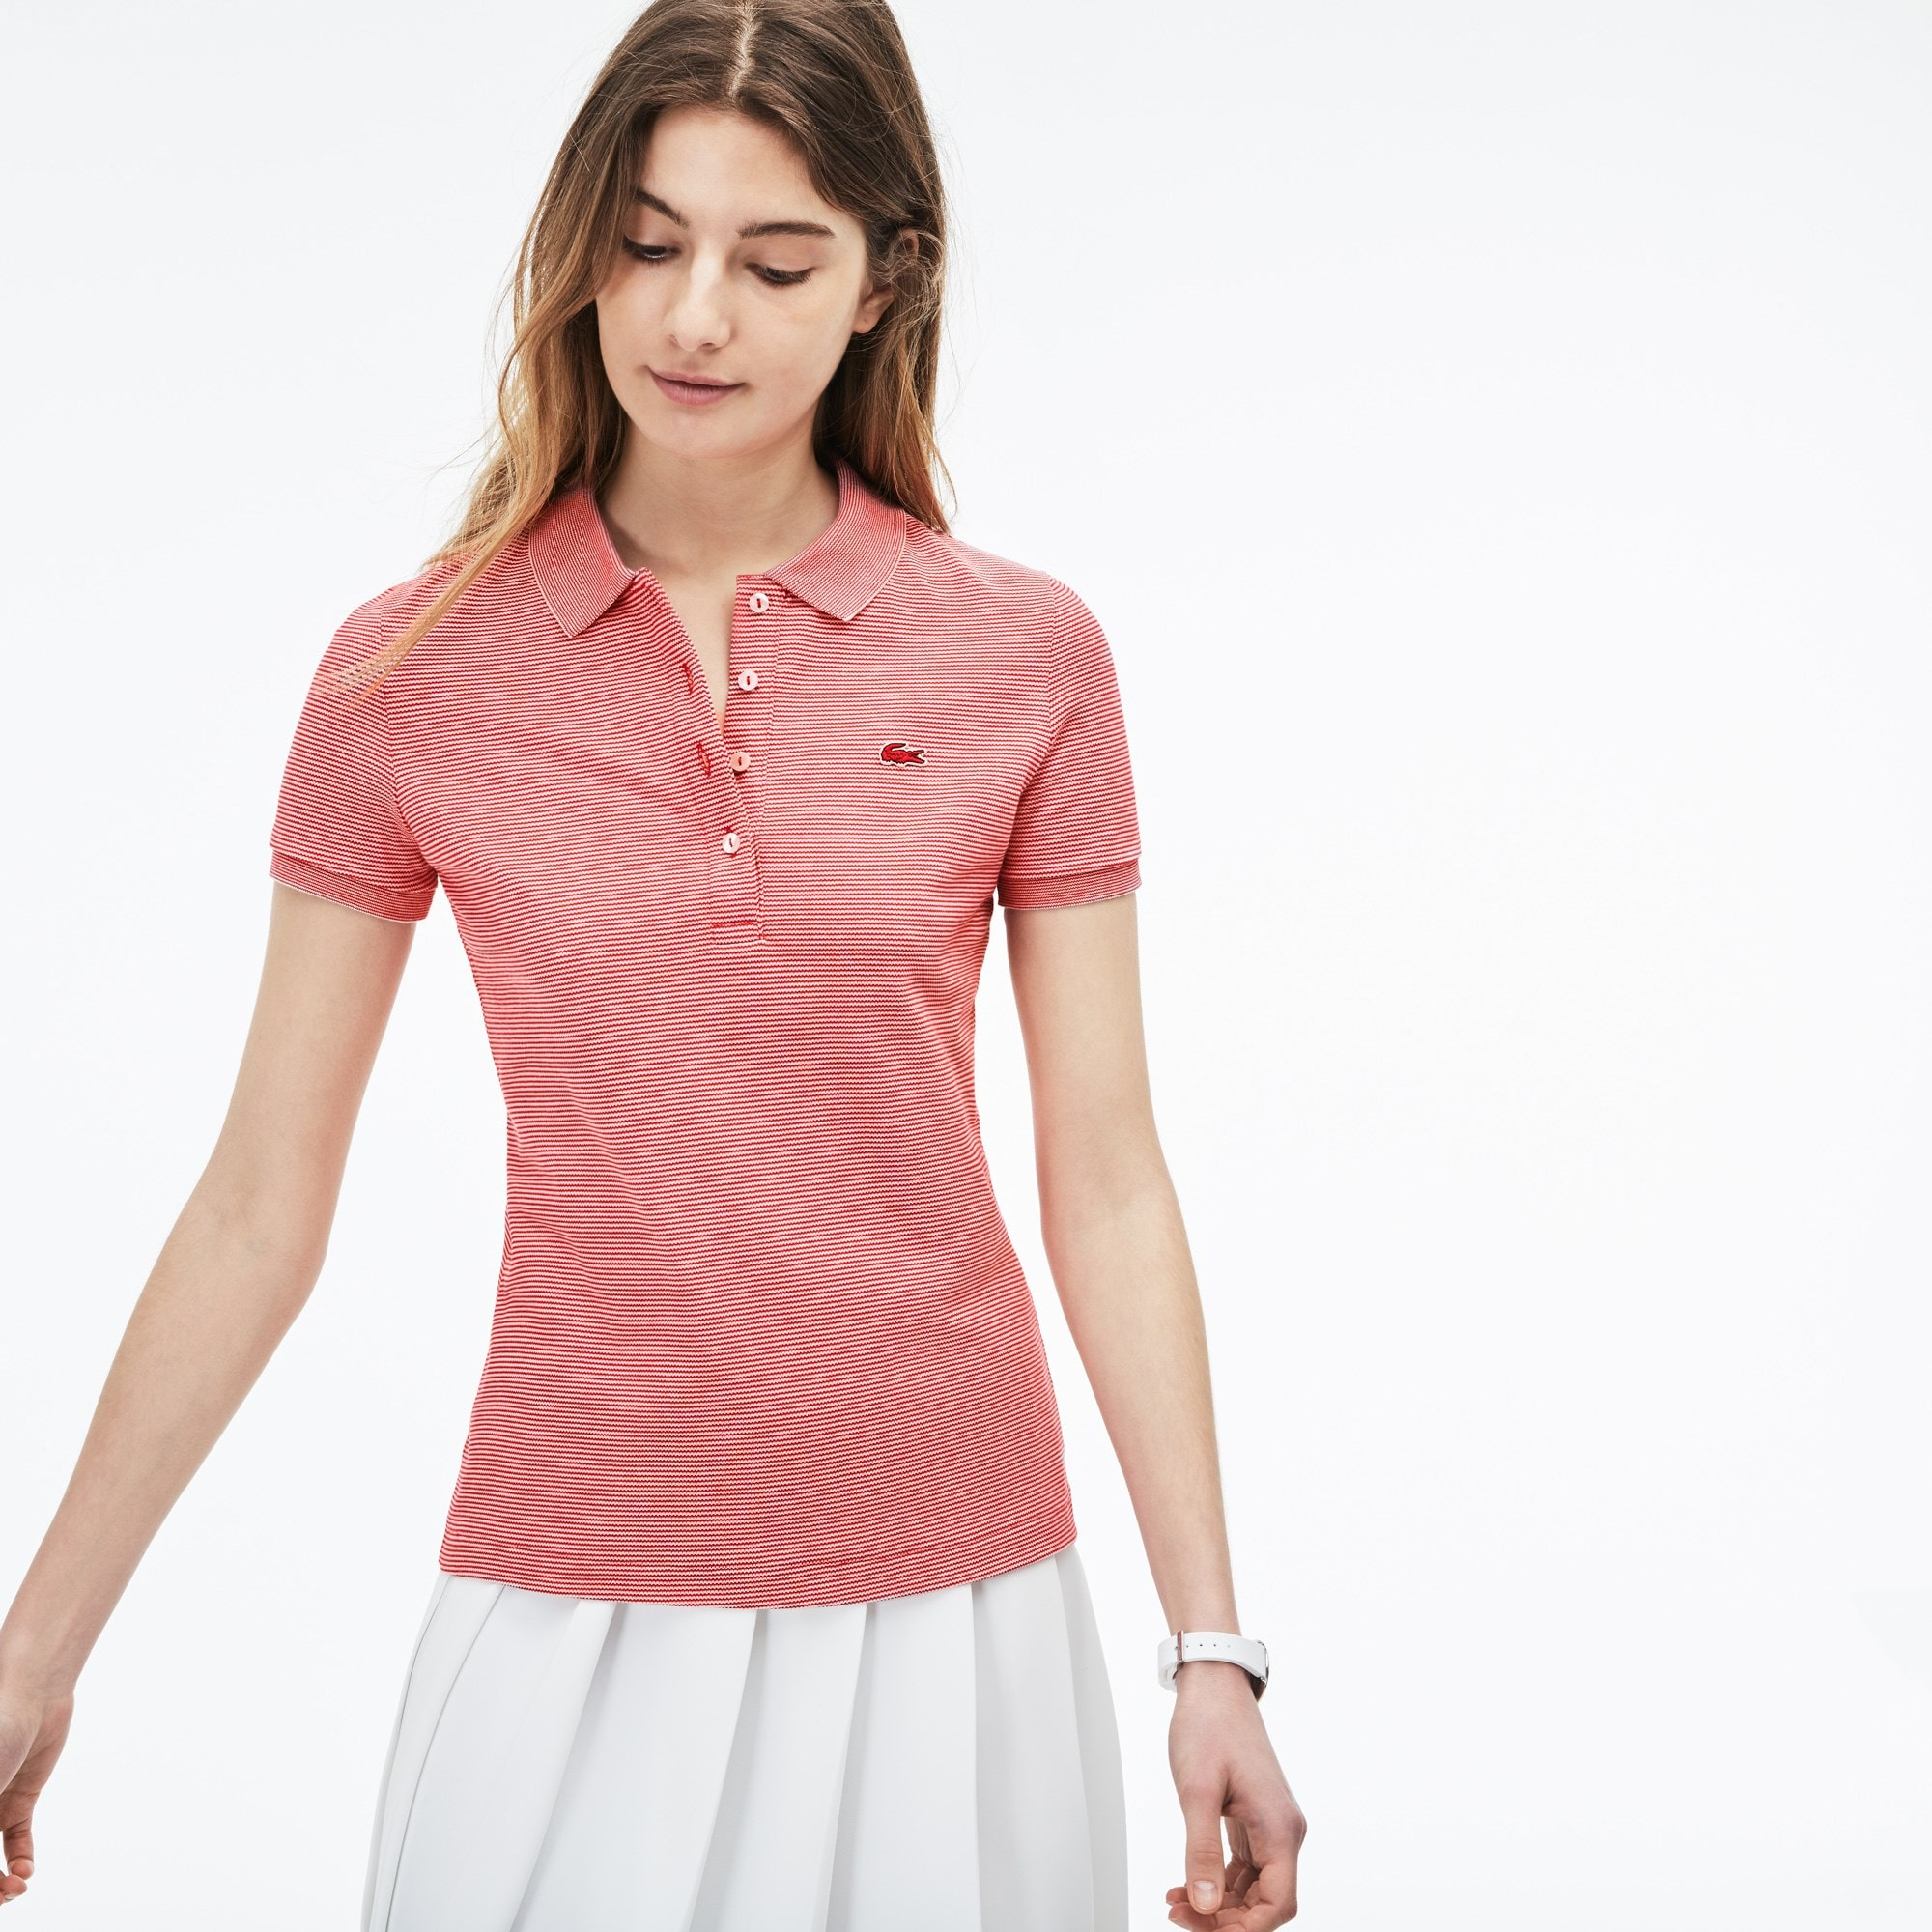 Lacoste polo dames slim fit,stretch mini piqué met krijtstreepjes